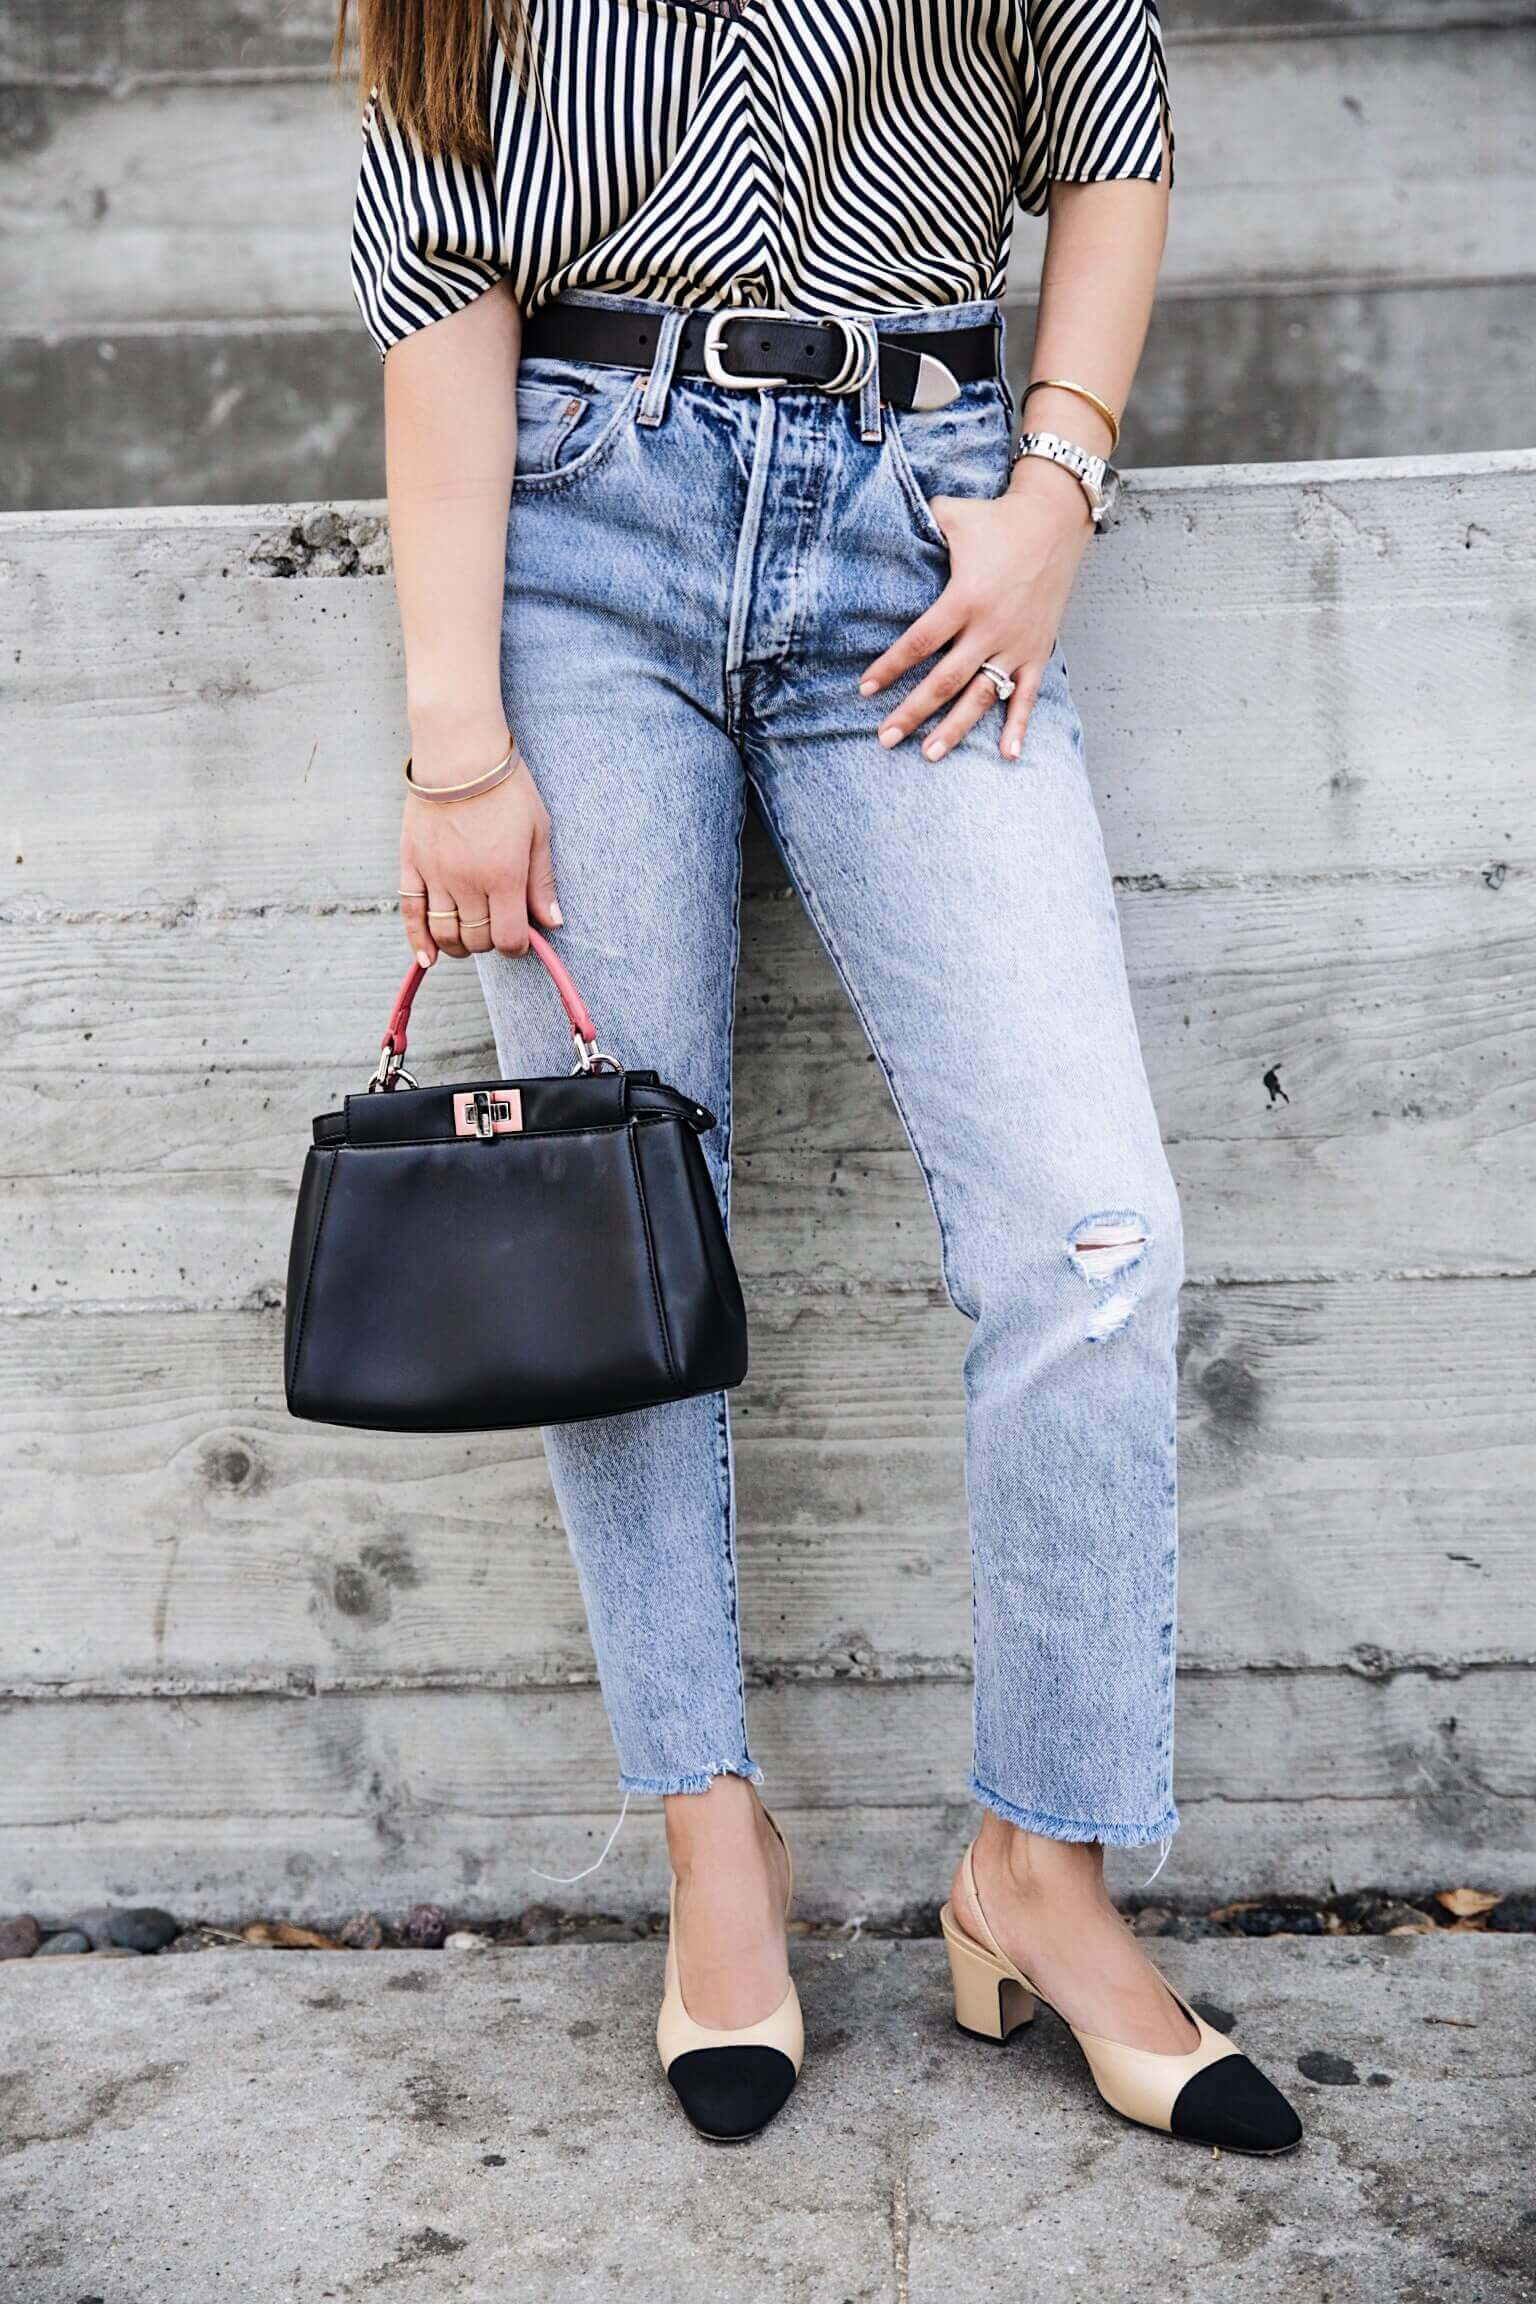 transitioning your style from summer to fall